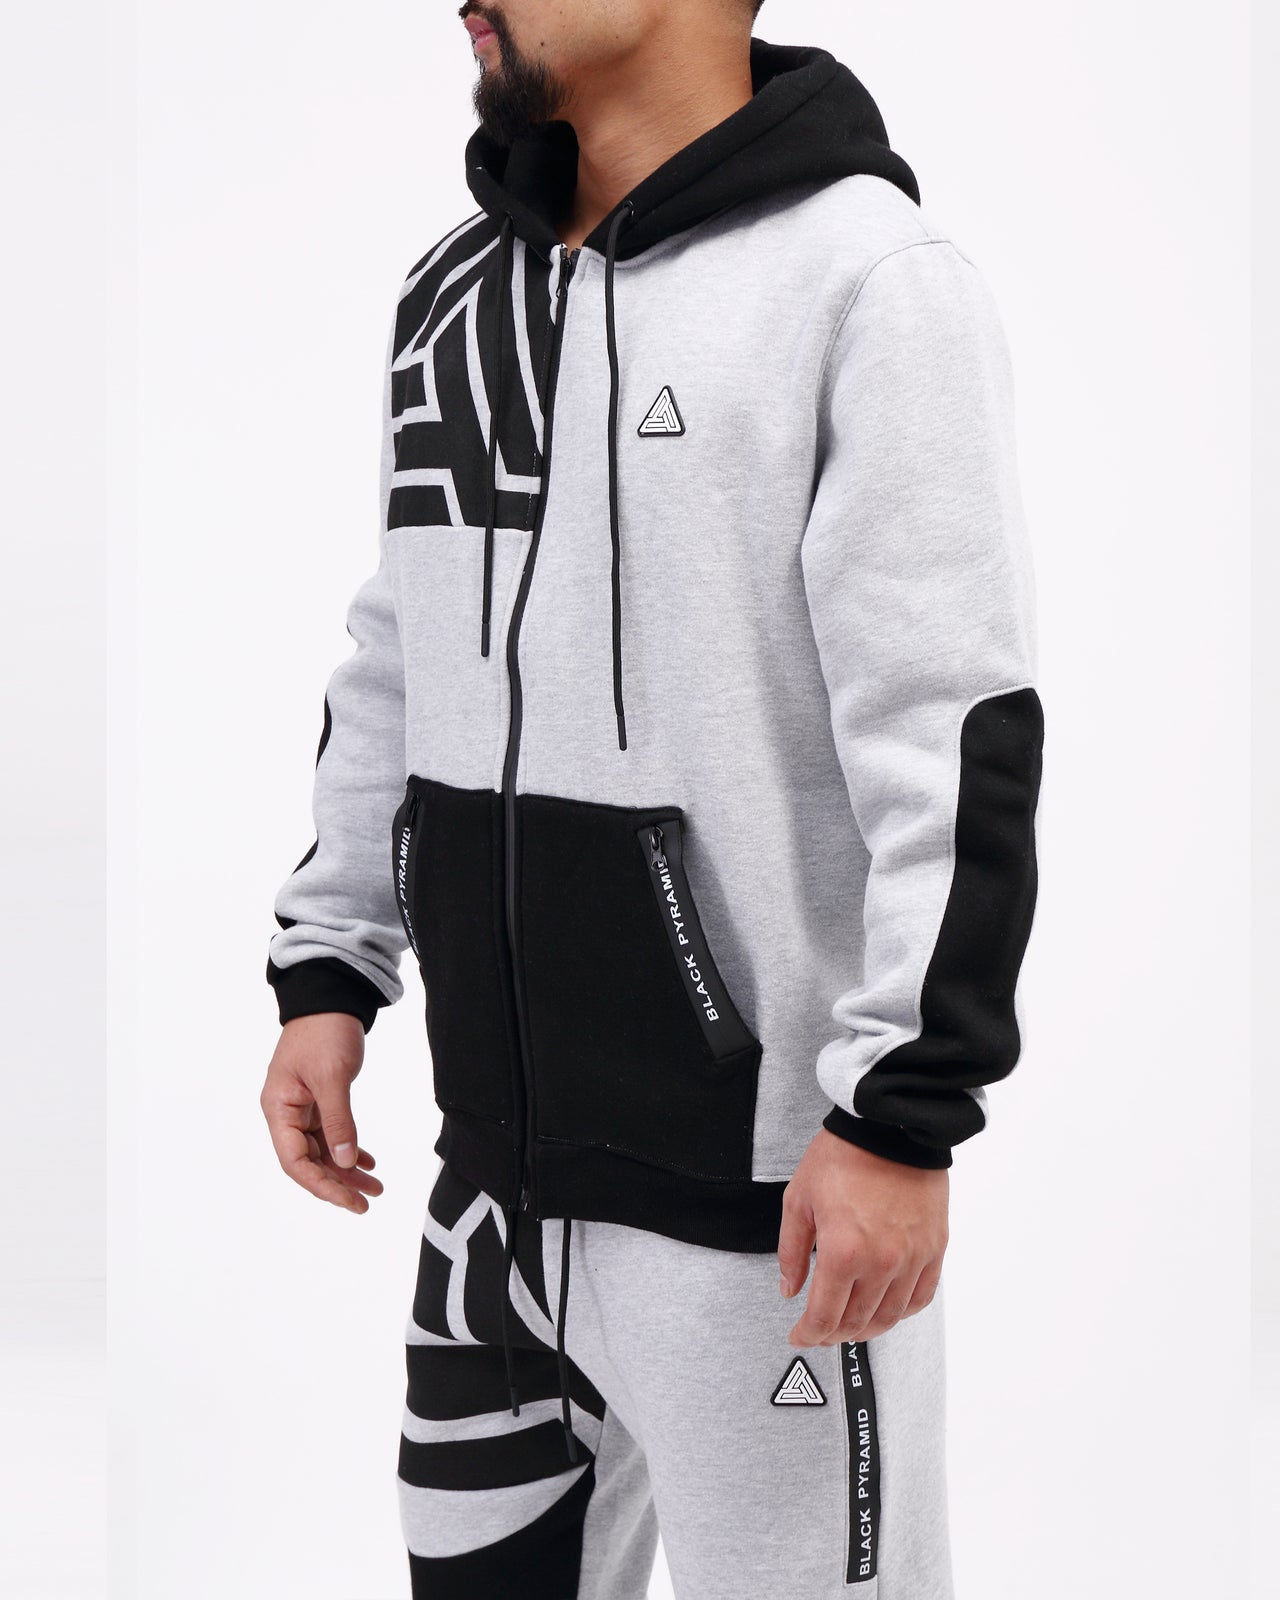 BP Zipper Tech Hoody - Color: GRAY